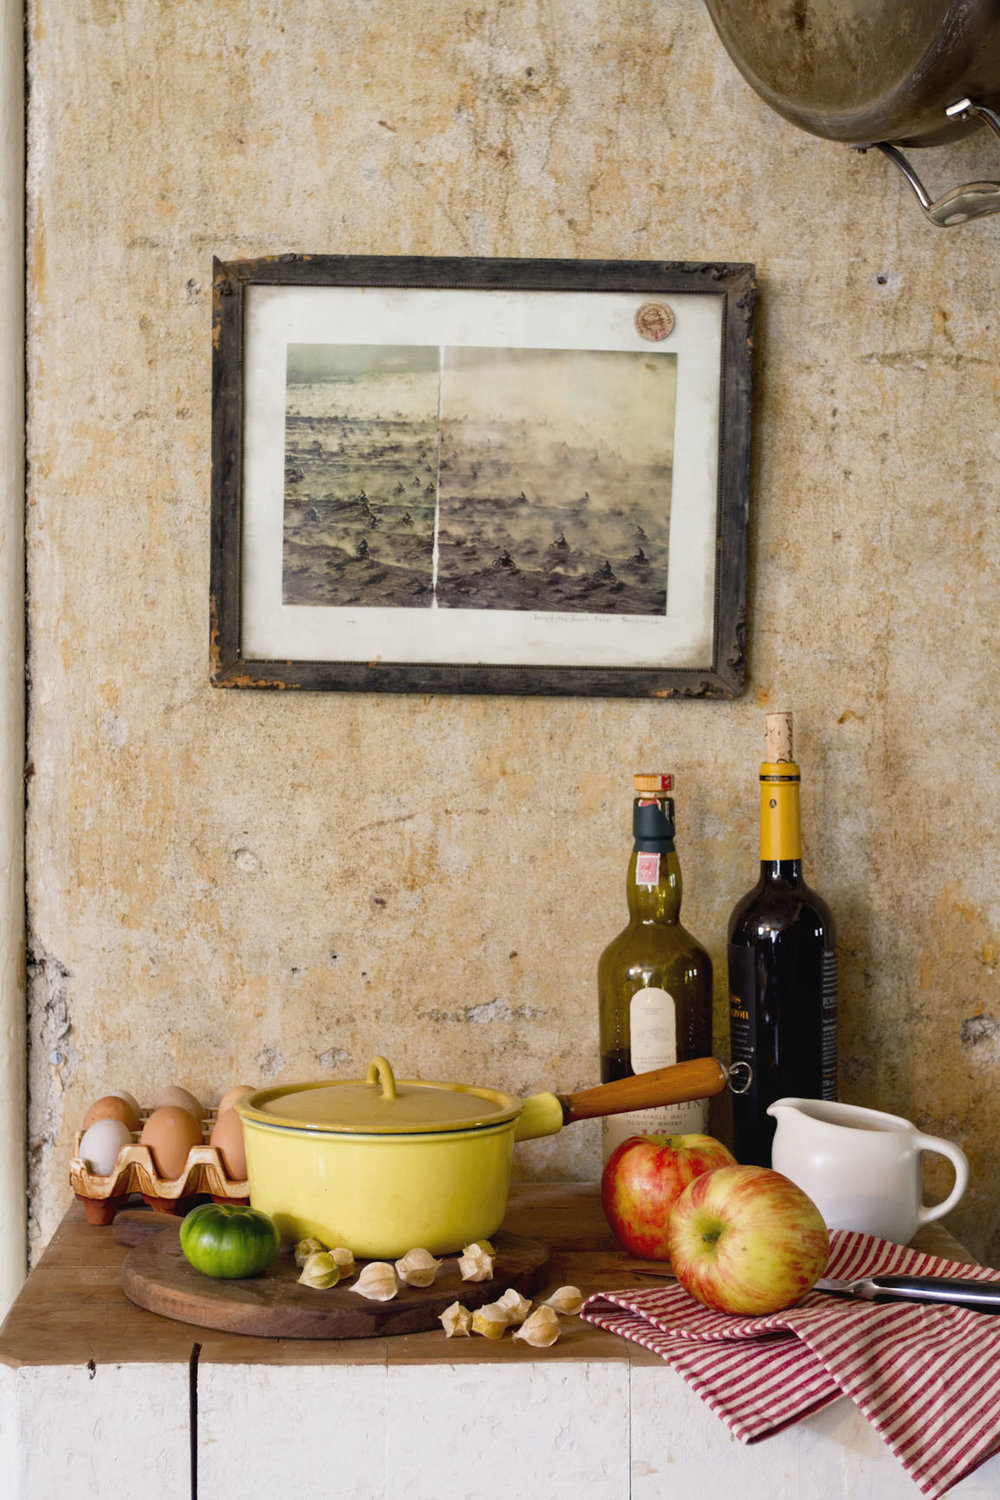 kitchen-lifestyle-still-life-autumn-rustic.jpg